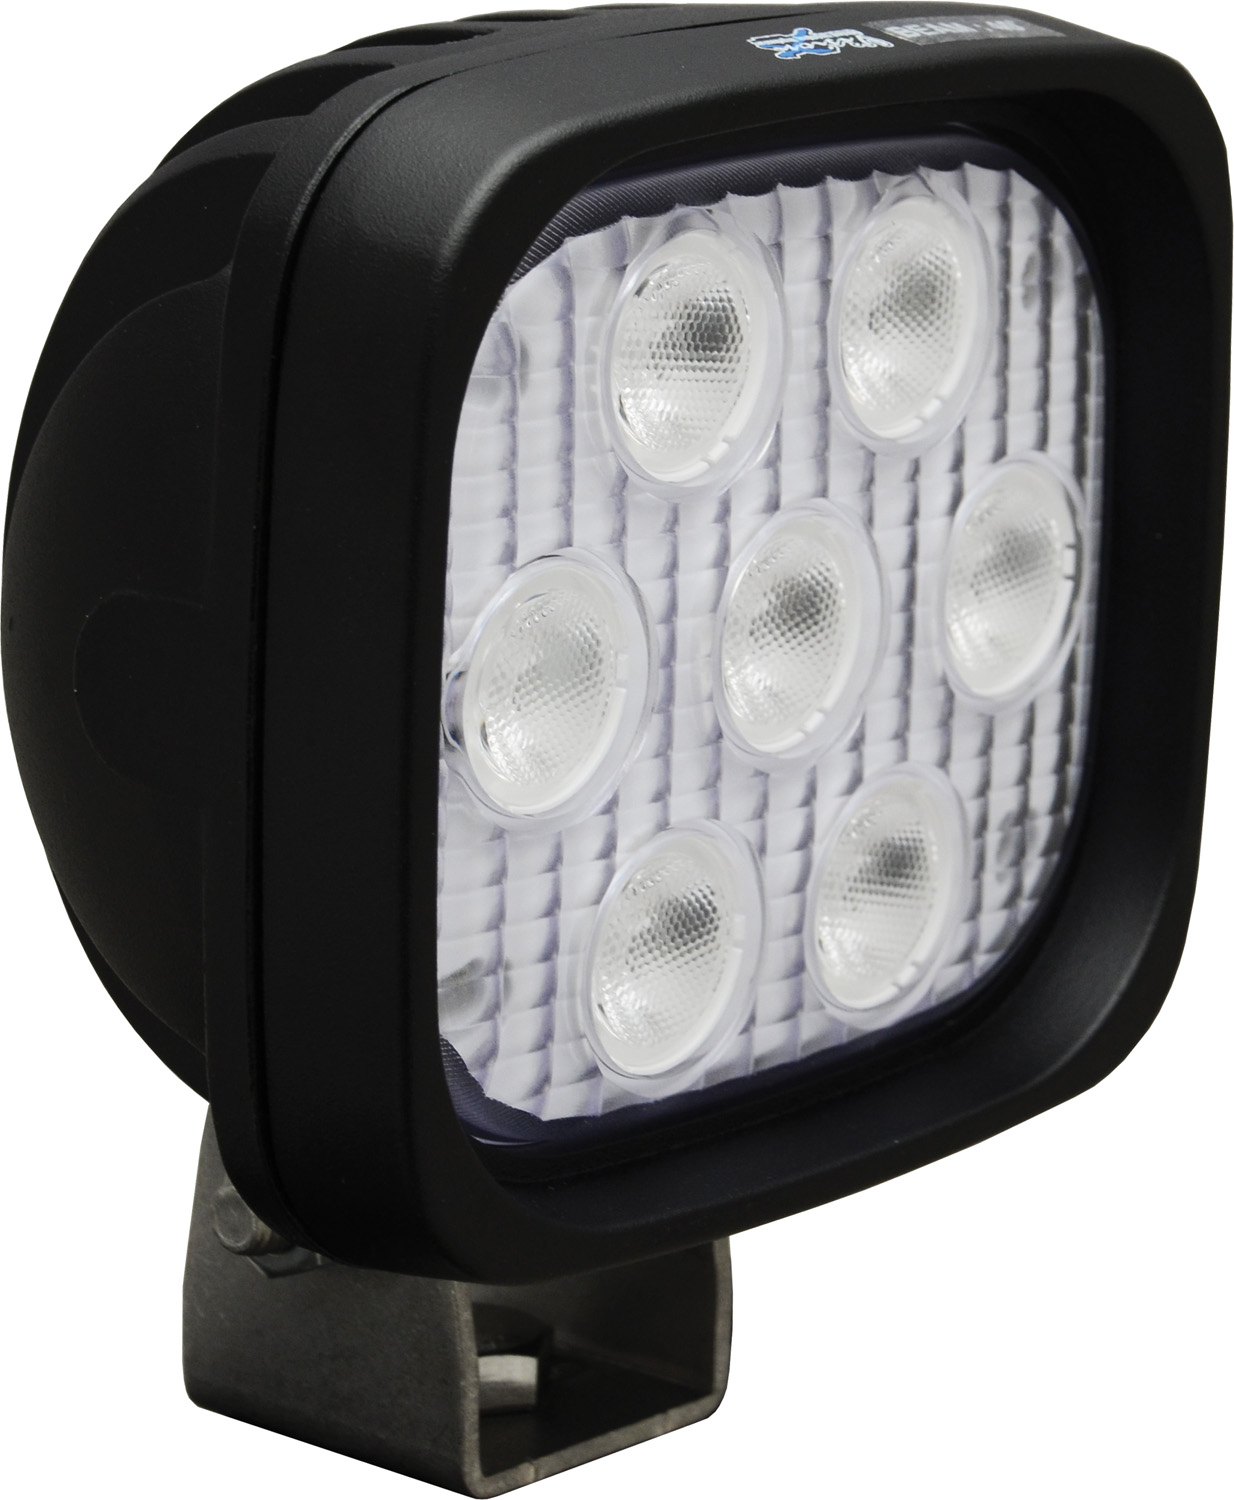 "4"" SQUARE UTILITY MARKET BLACK 7 3W BLUE LED'S 40? WIDE"